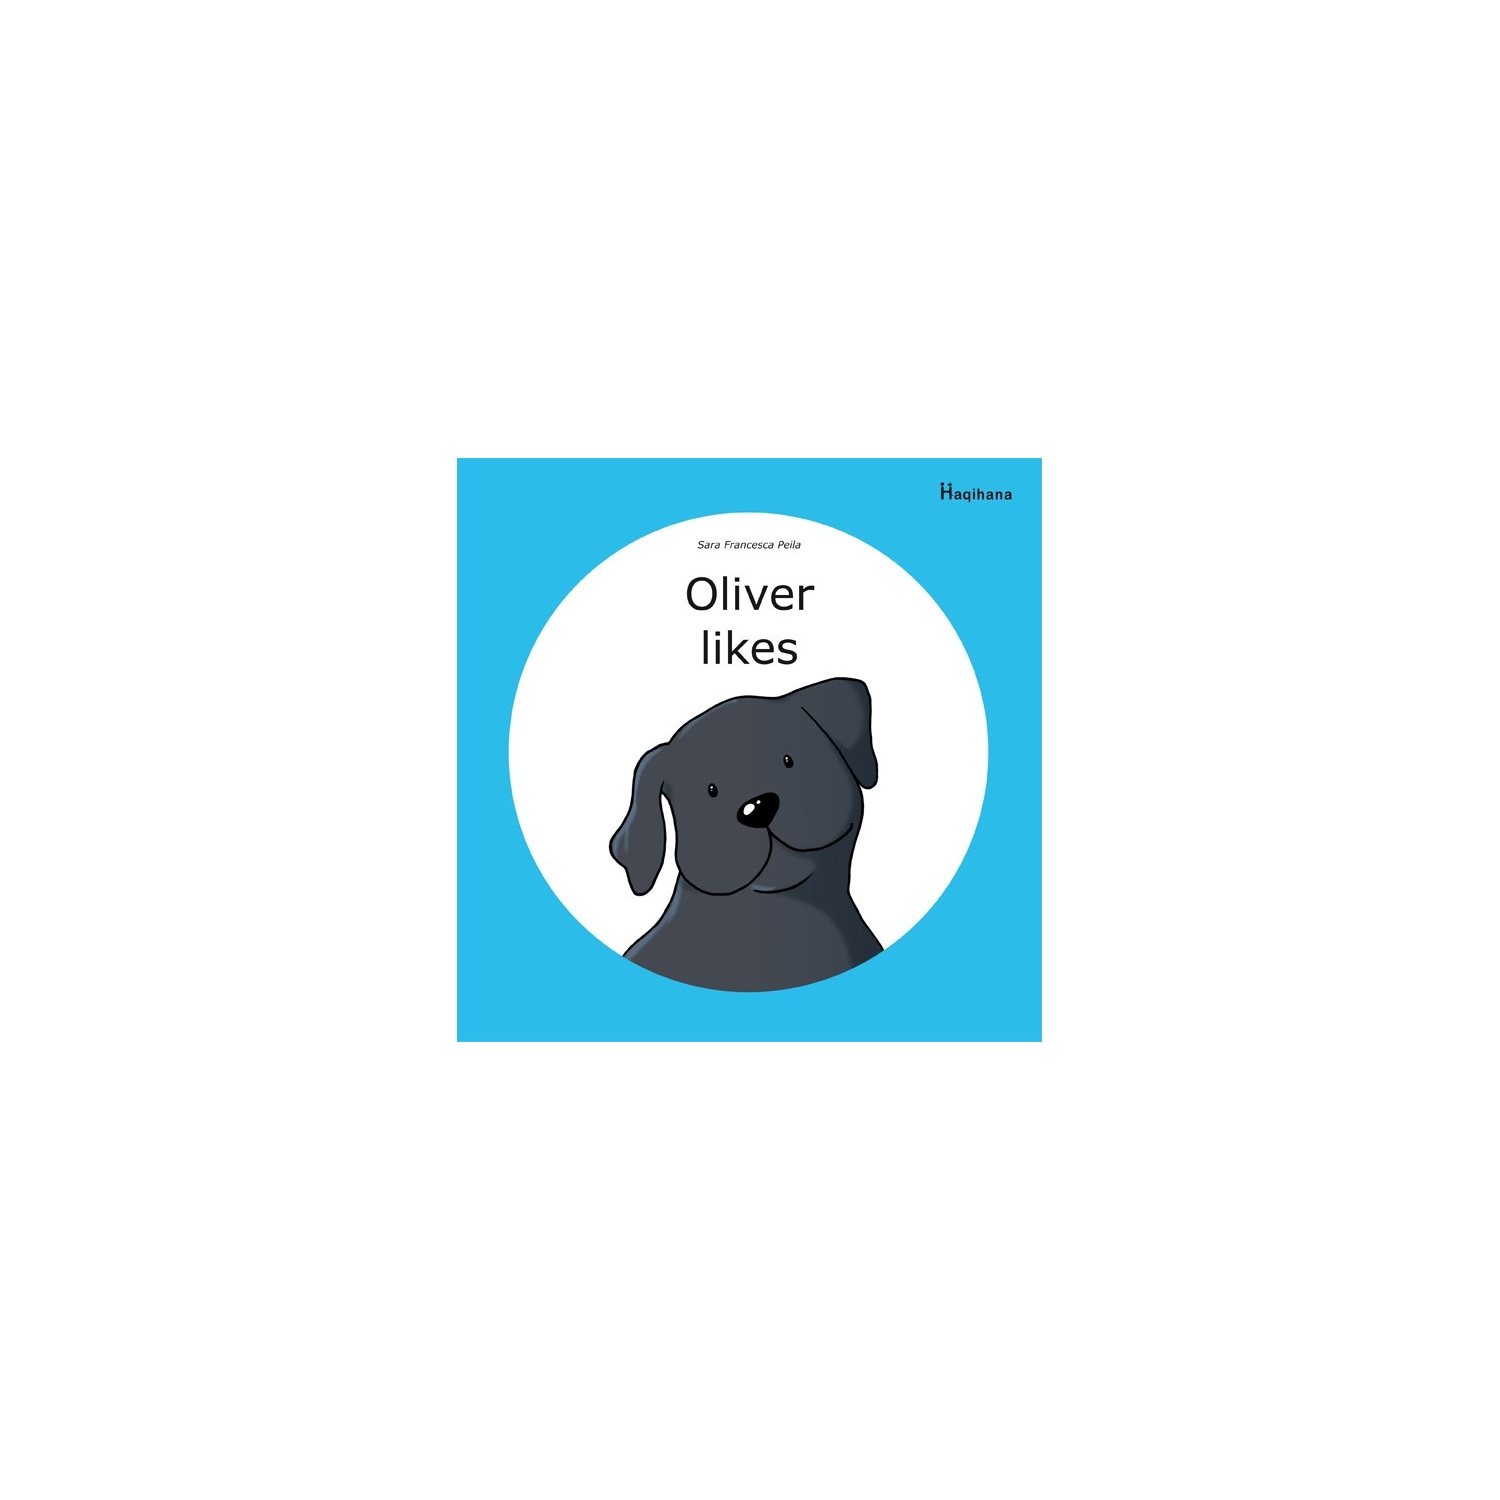 Oliver likes - Oliver does not like